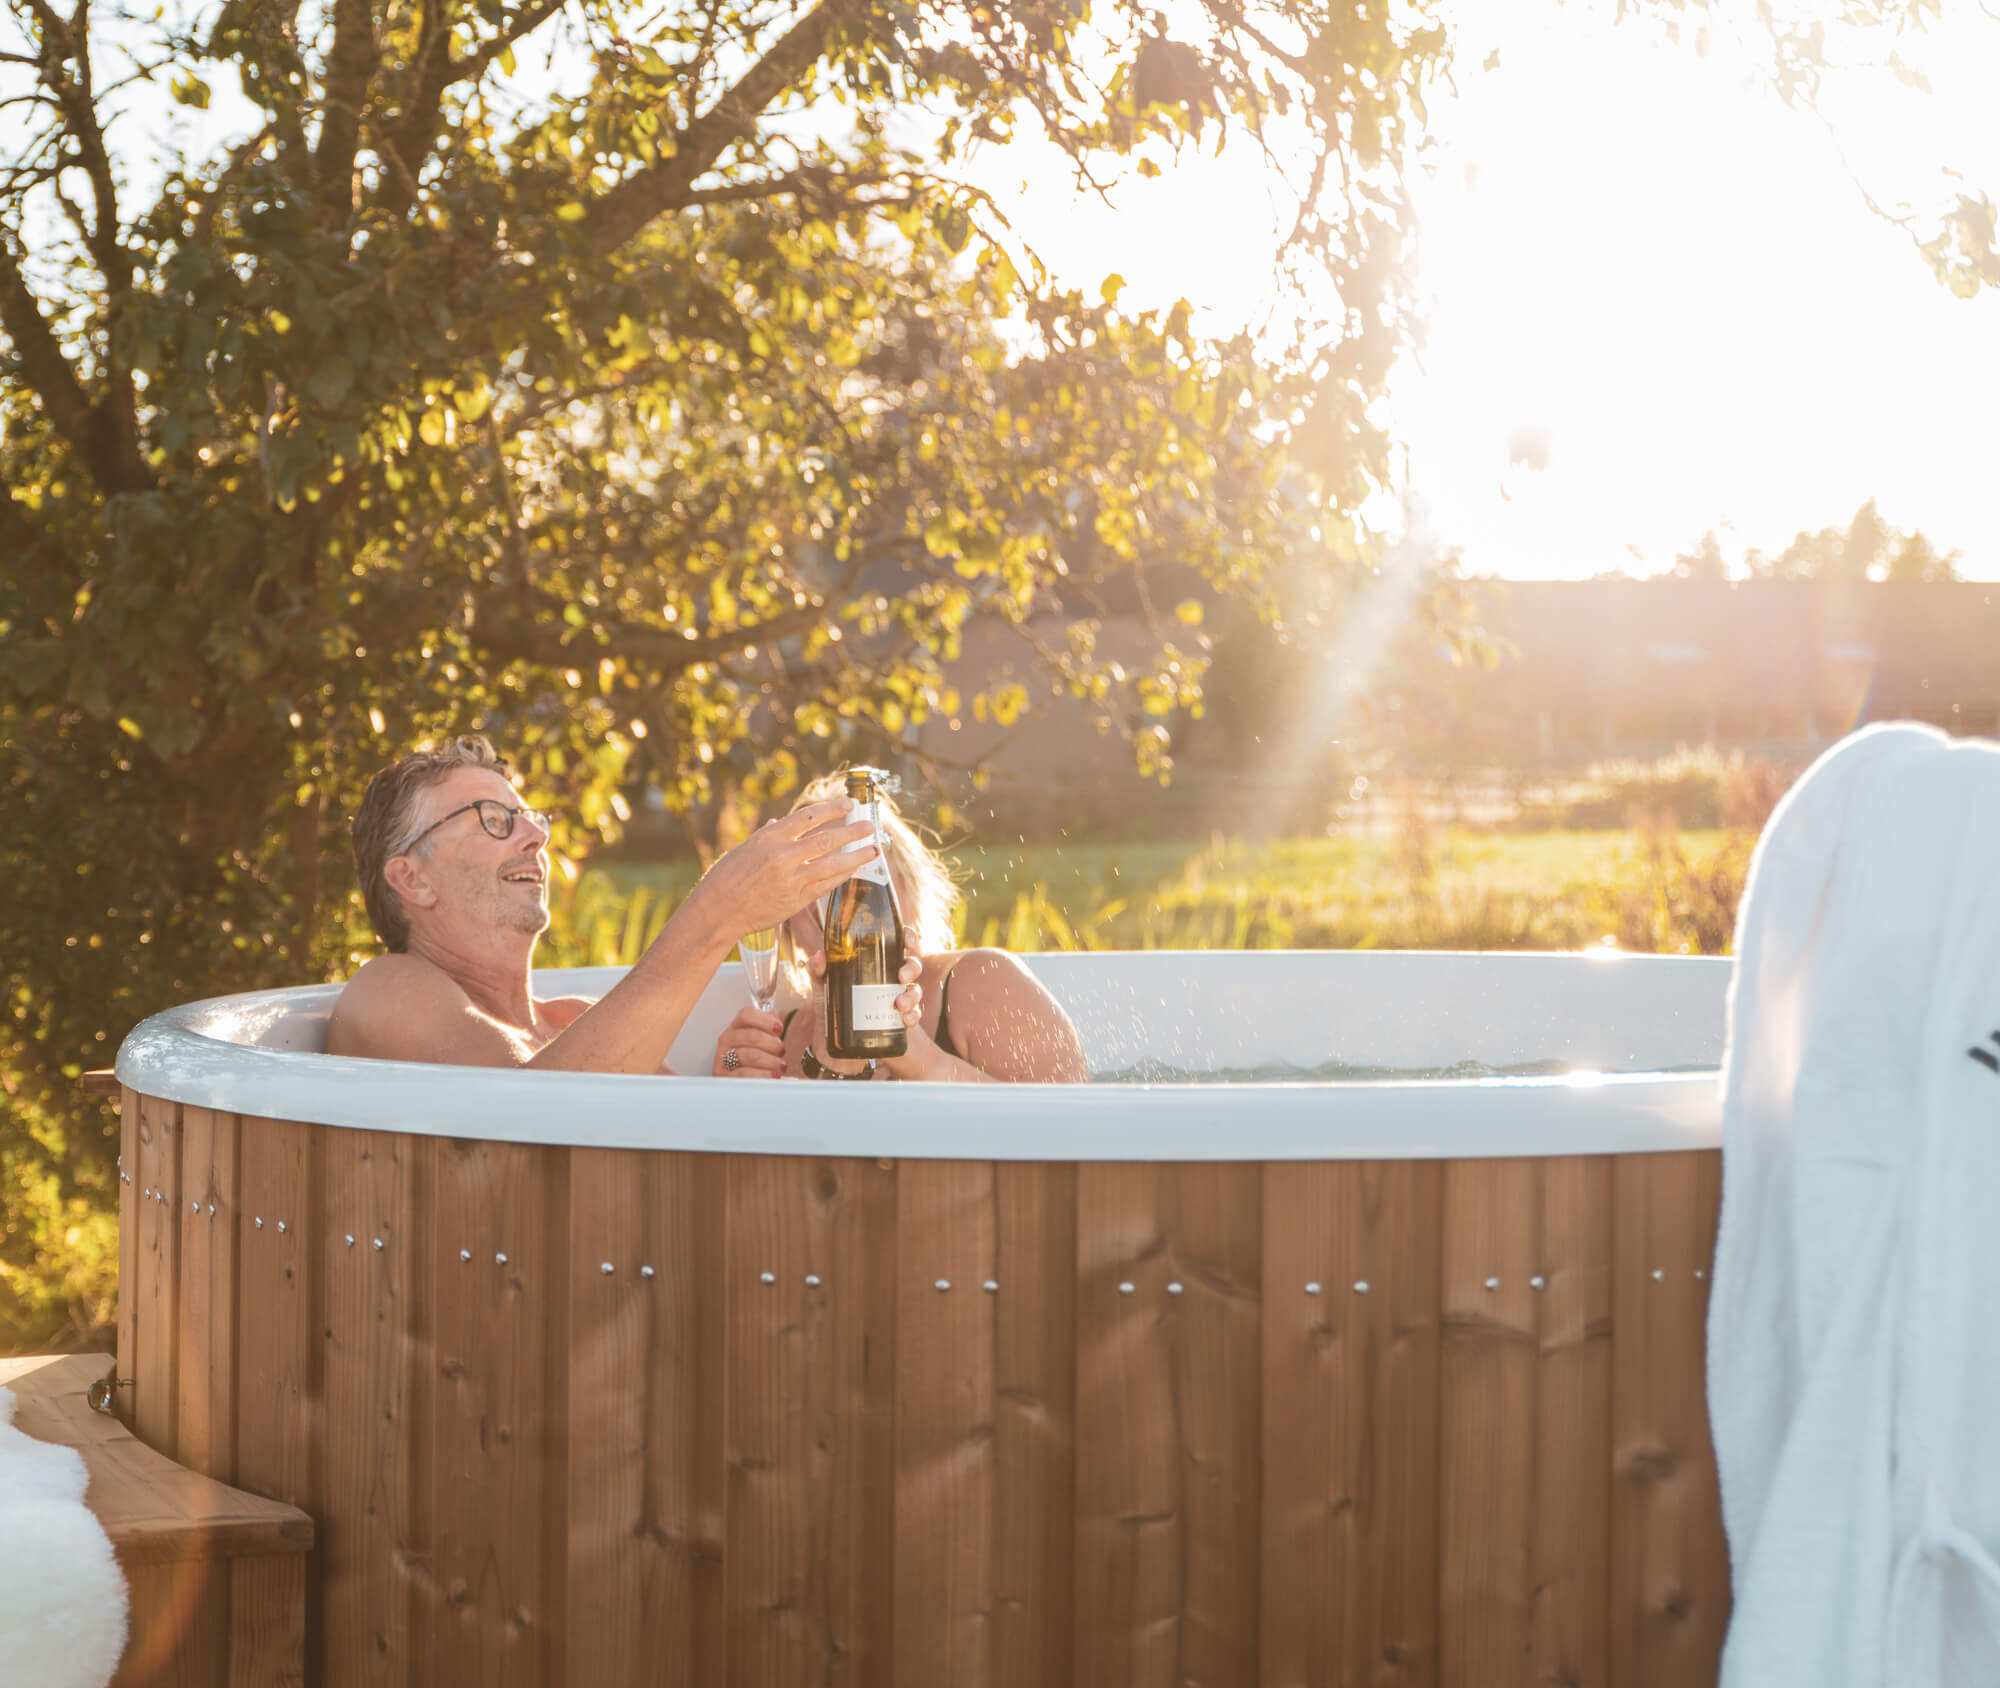 Hottub/Welvaere-DucktubOval-Couple-023.jpg